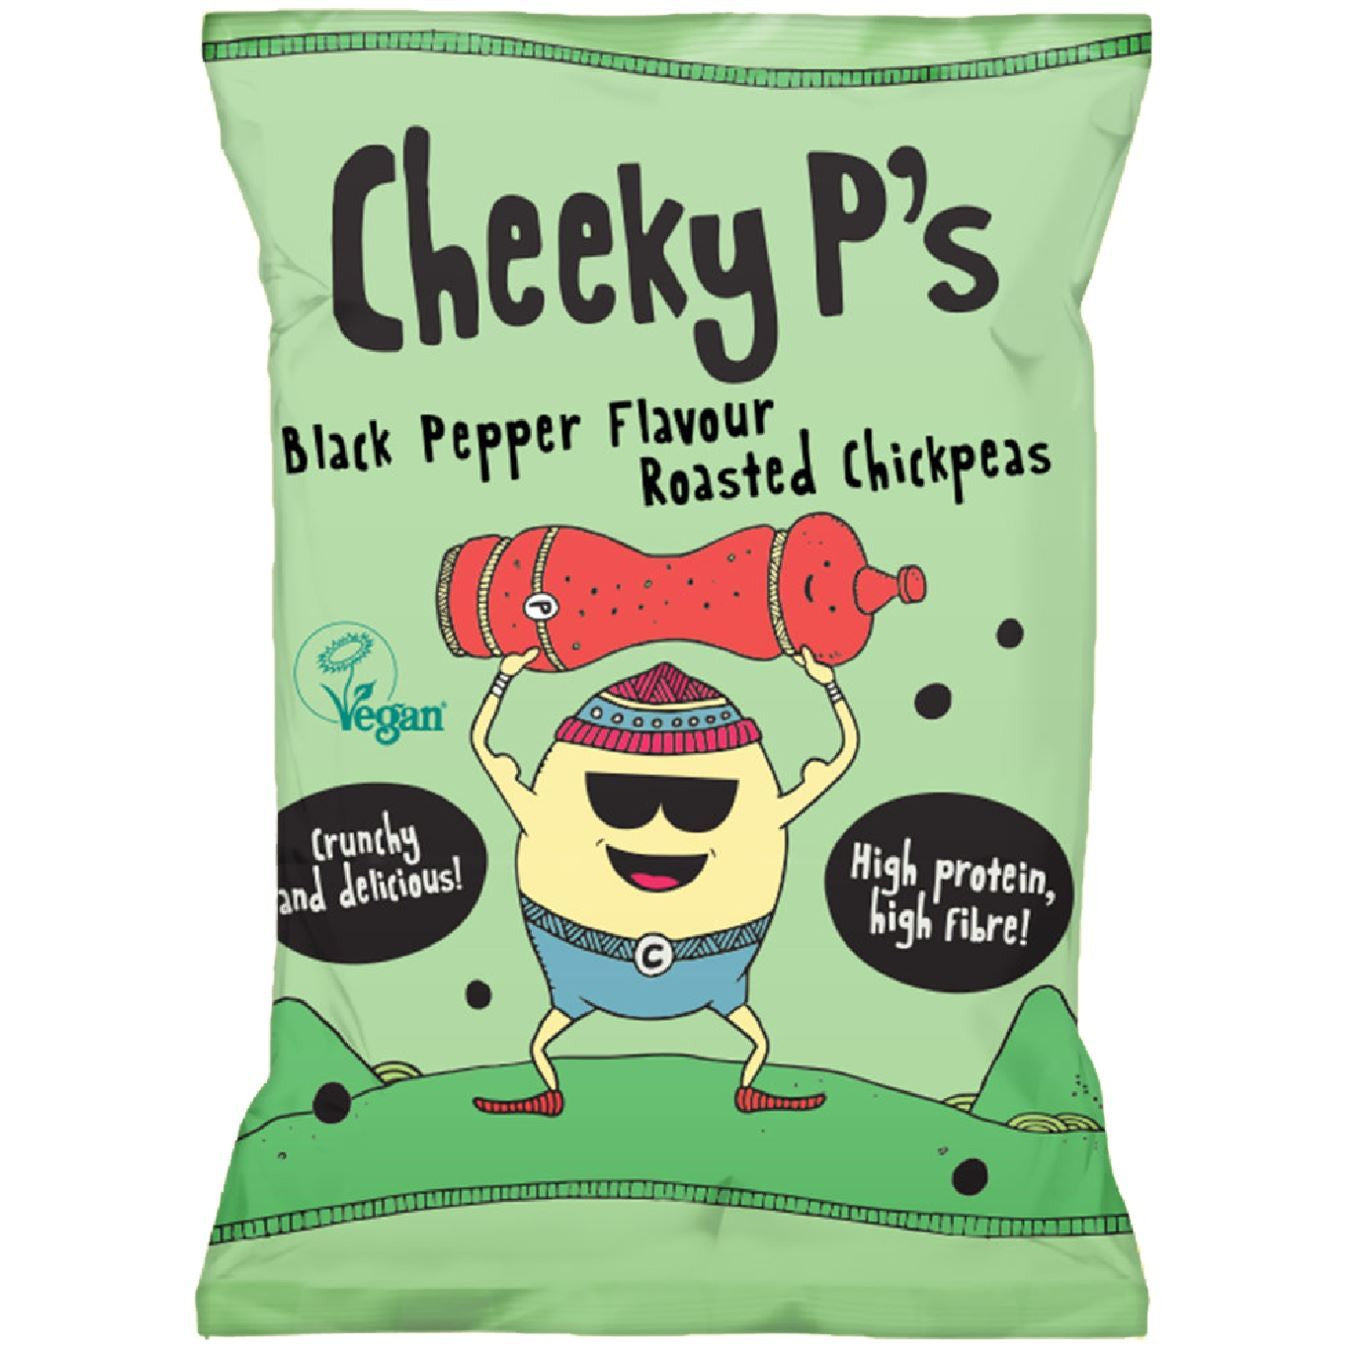 Savoury Snacking - Cheeky P's - Roasted Chickpeas (50g) (Various)